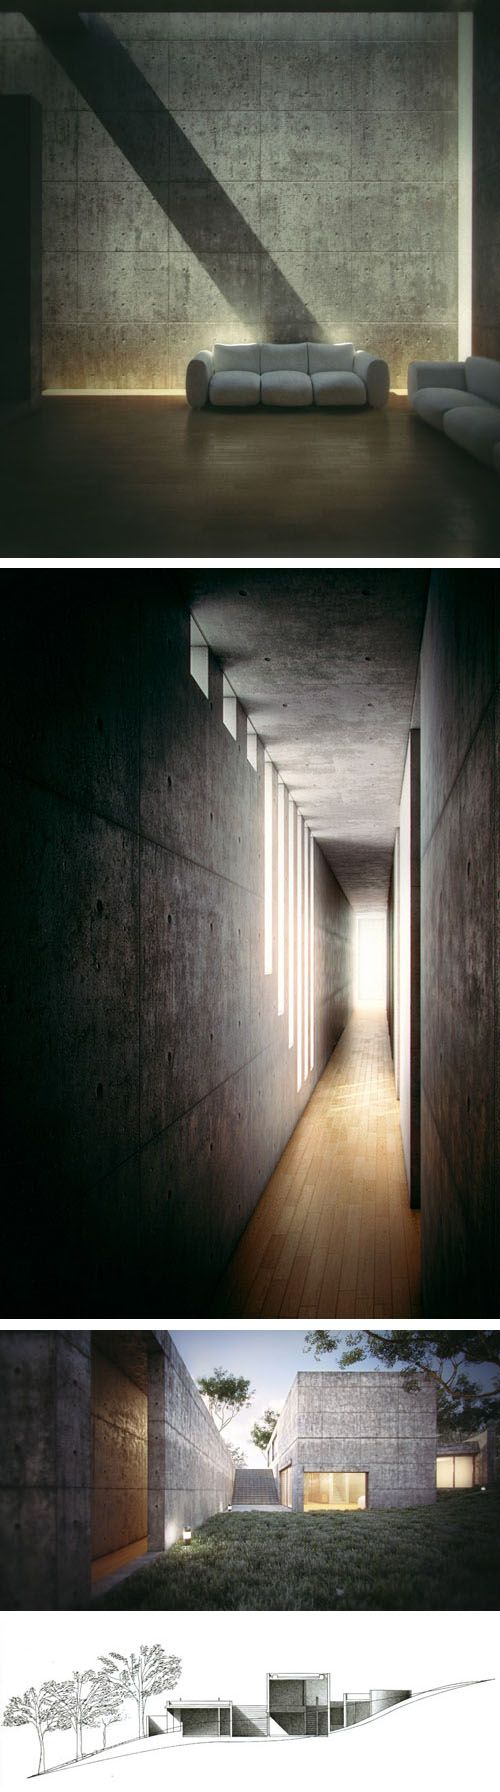 I love the light in this - Koshino House by Tadao Ando